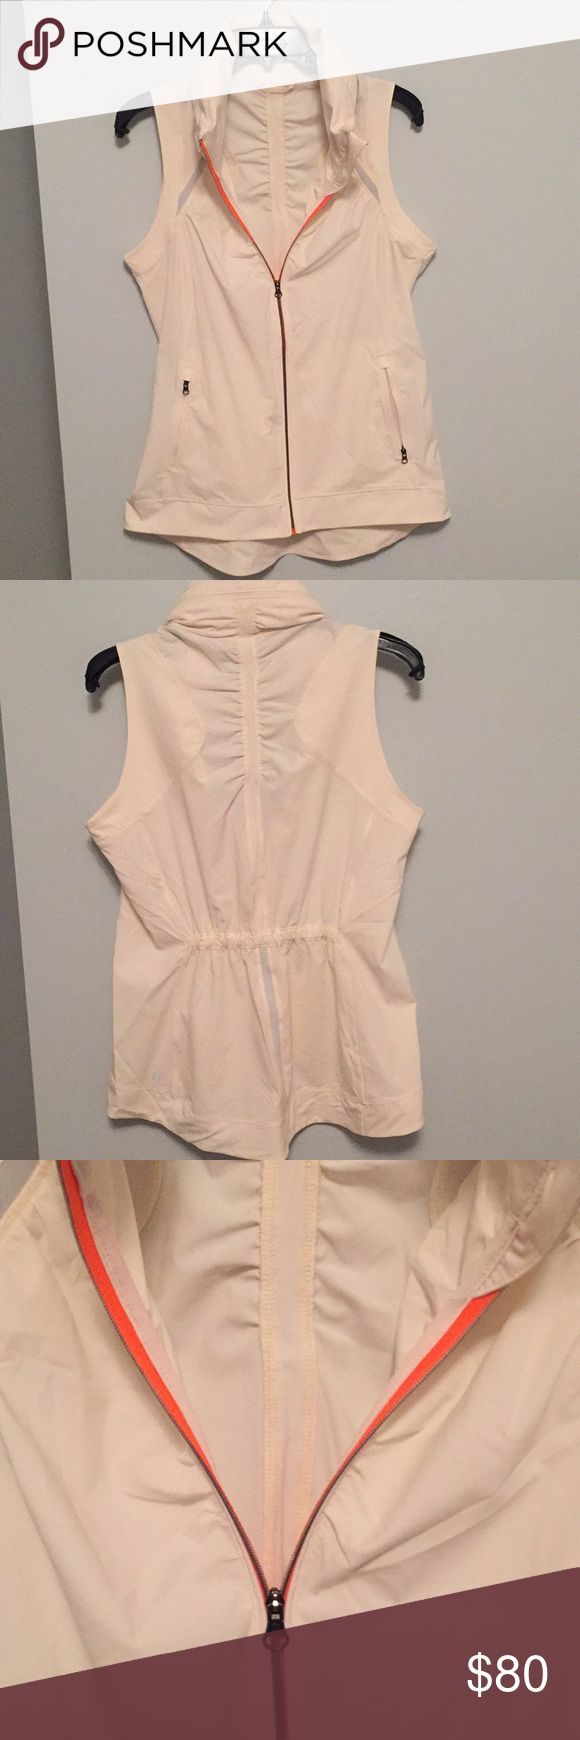 NWOT Lululemon Vest NWOT Vest from Lululemon. Pink and silver reflective details make this Vest great for running or biking! Zipper in collar can be undone to reveal an optional hood. Size tag removed, fits LIKE AN 8 OR 10! lululemon athletica Jackets & Coats Vests